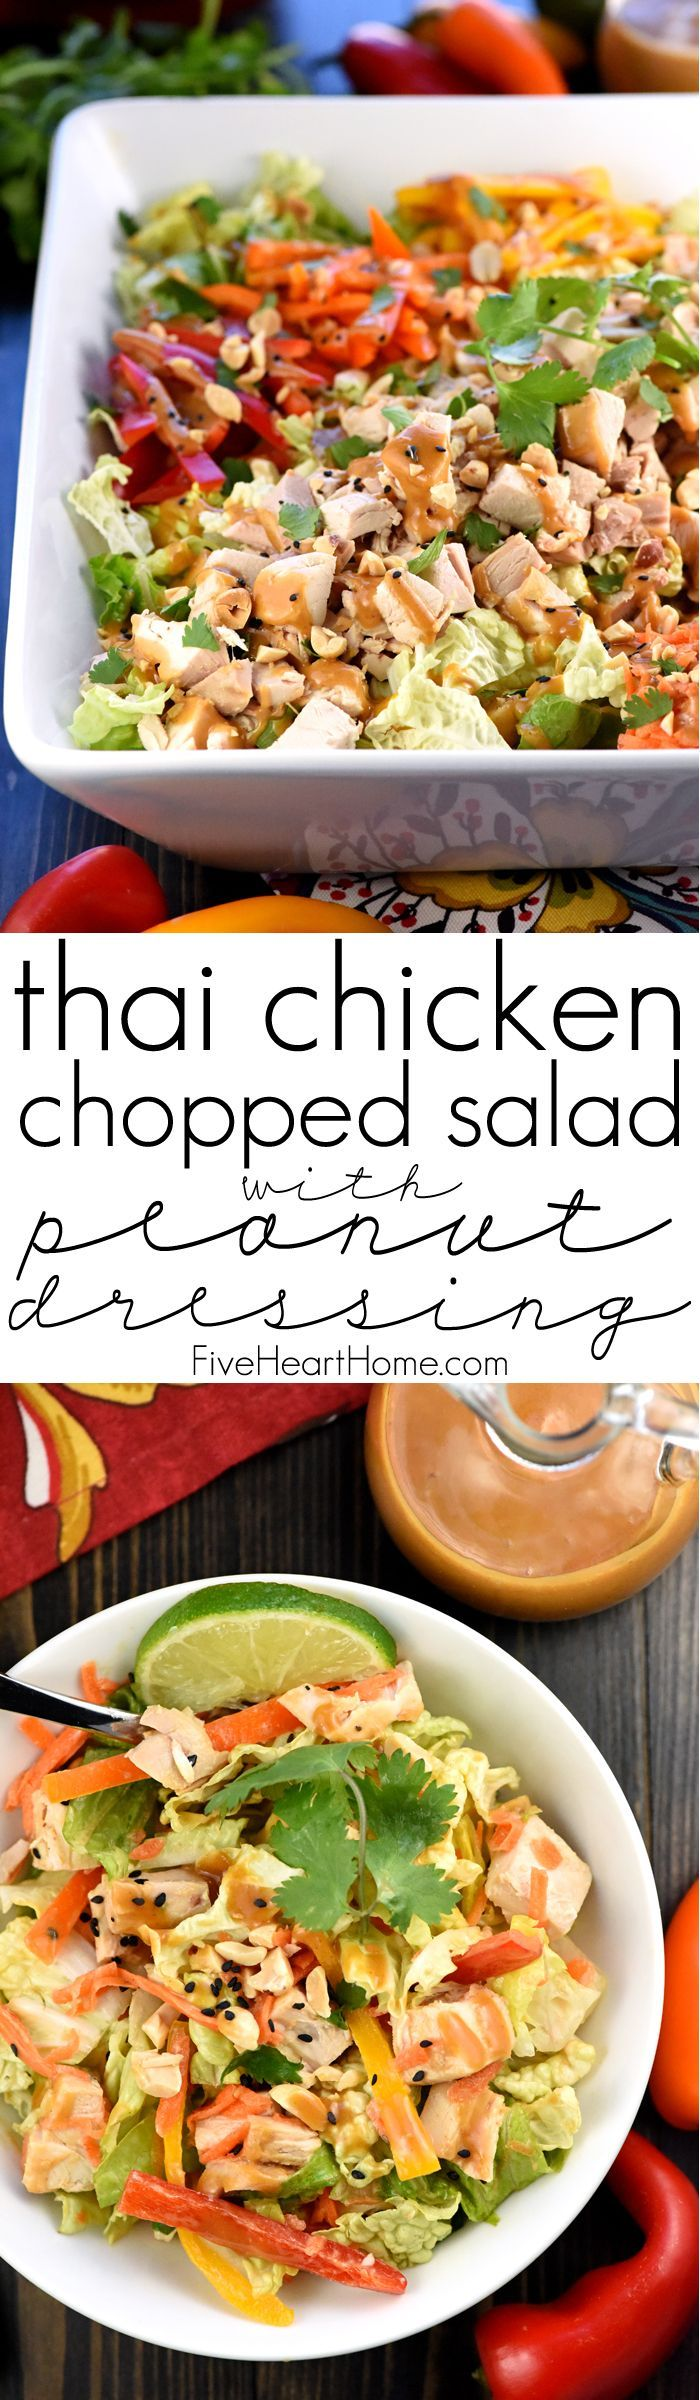 Thai Chicken Chopped Salad with Peanut Dressing (use gf soy sauce) ~ exploding with the contrasting flavors and textures of crunchy Napa cabbage, juicy chicken, colorful peppers, sweet carrots, salty peanuts, and fresh cilantro! | FiveHeartHome.com